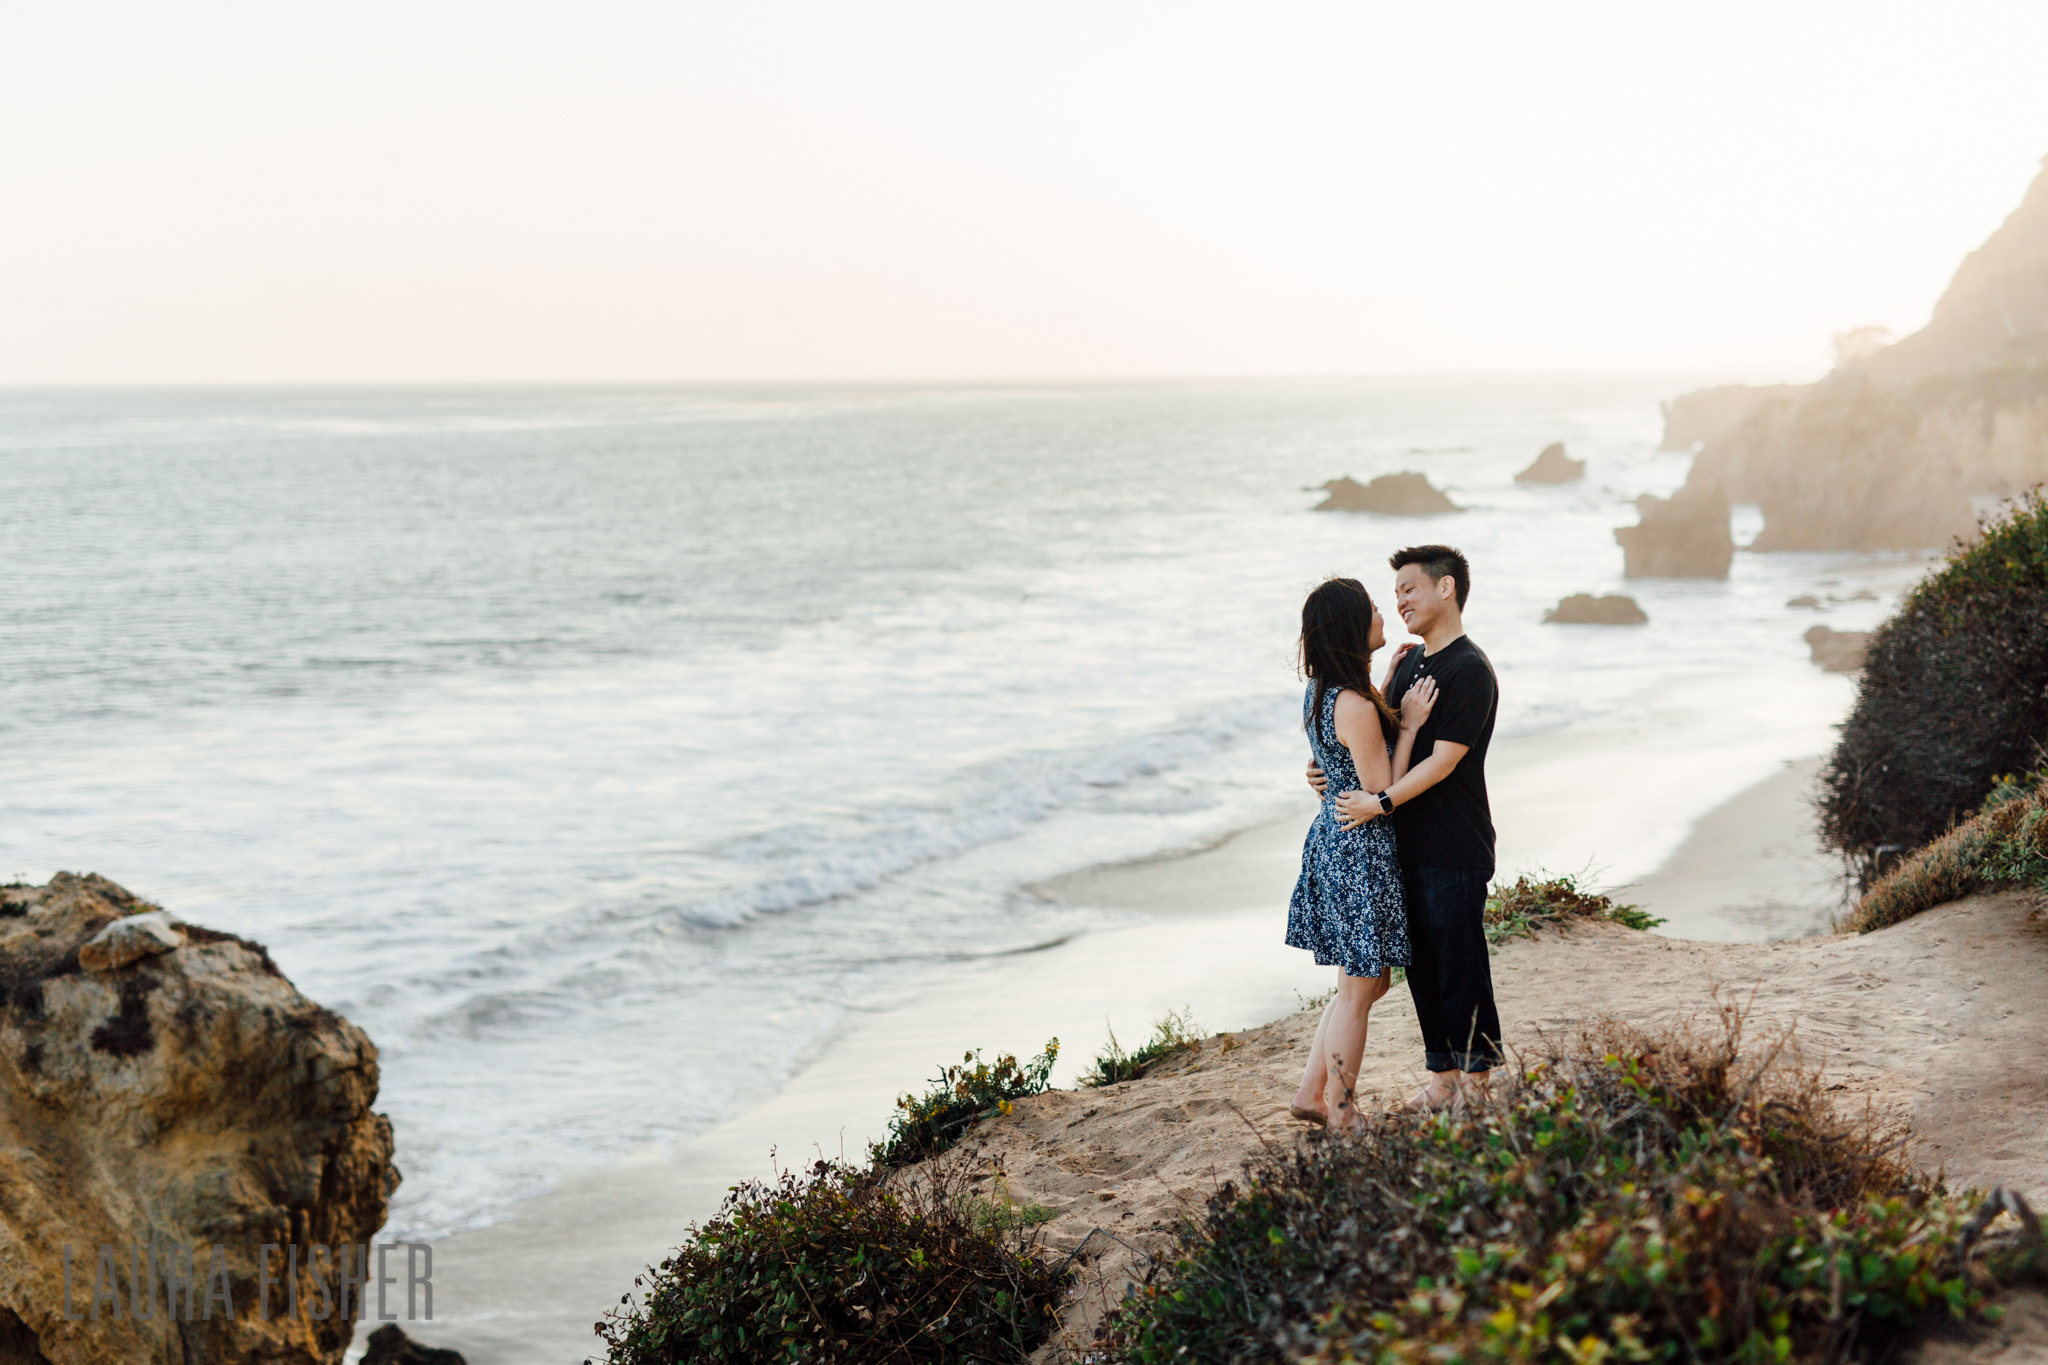 malibu-california-wedding-el-matador-beach-laura-fisher-photography-0066.jpg